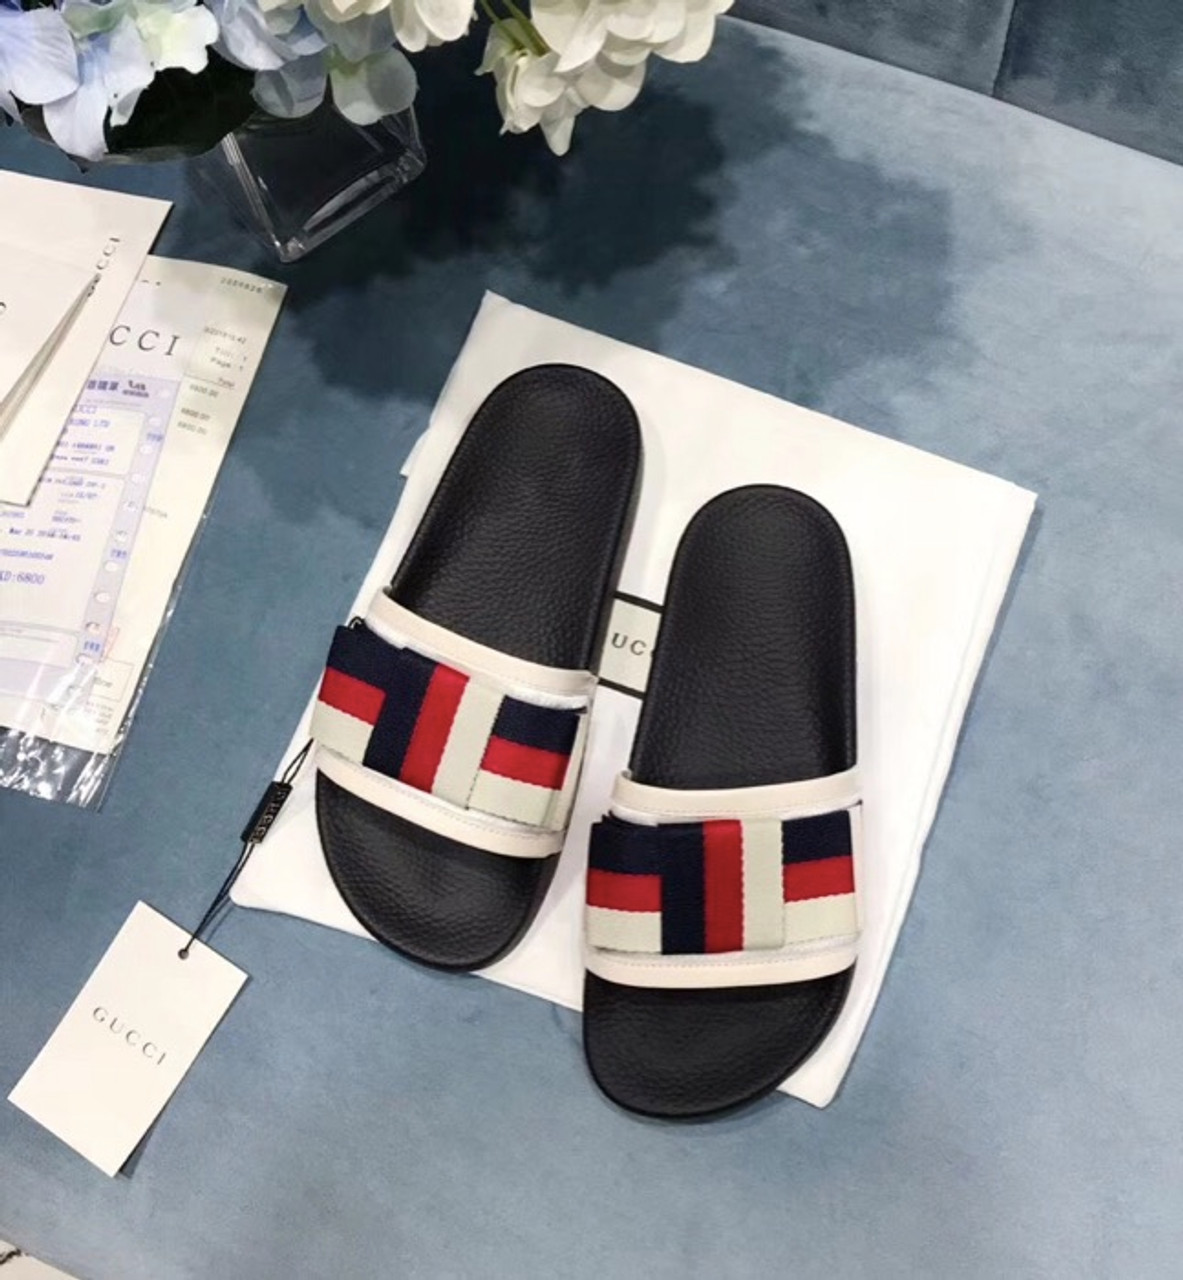 29d9901ee469 Gucci Satin Slide with Web Bow Pursuit Canvas Slide Pool Sandals  Spring Summer 2018 Collection